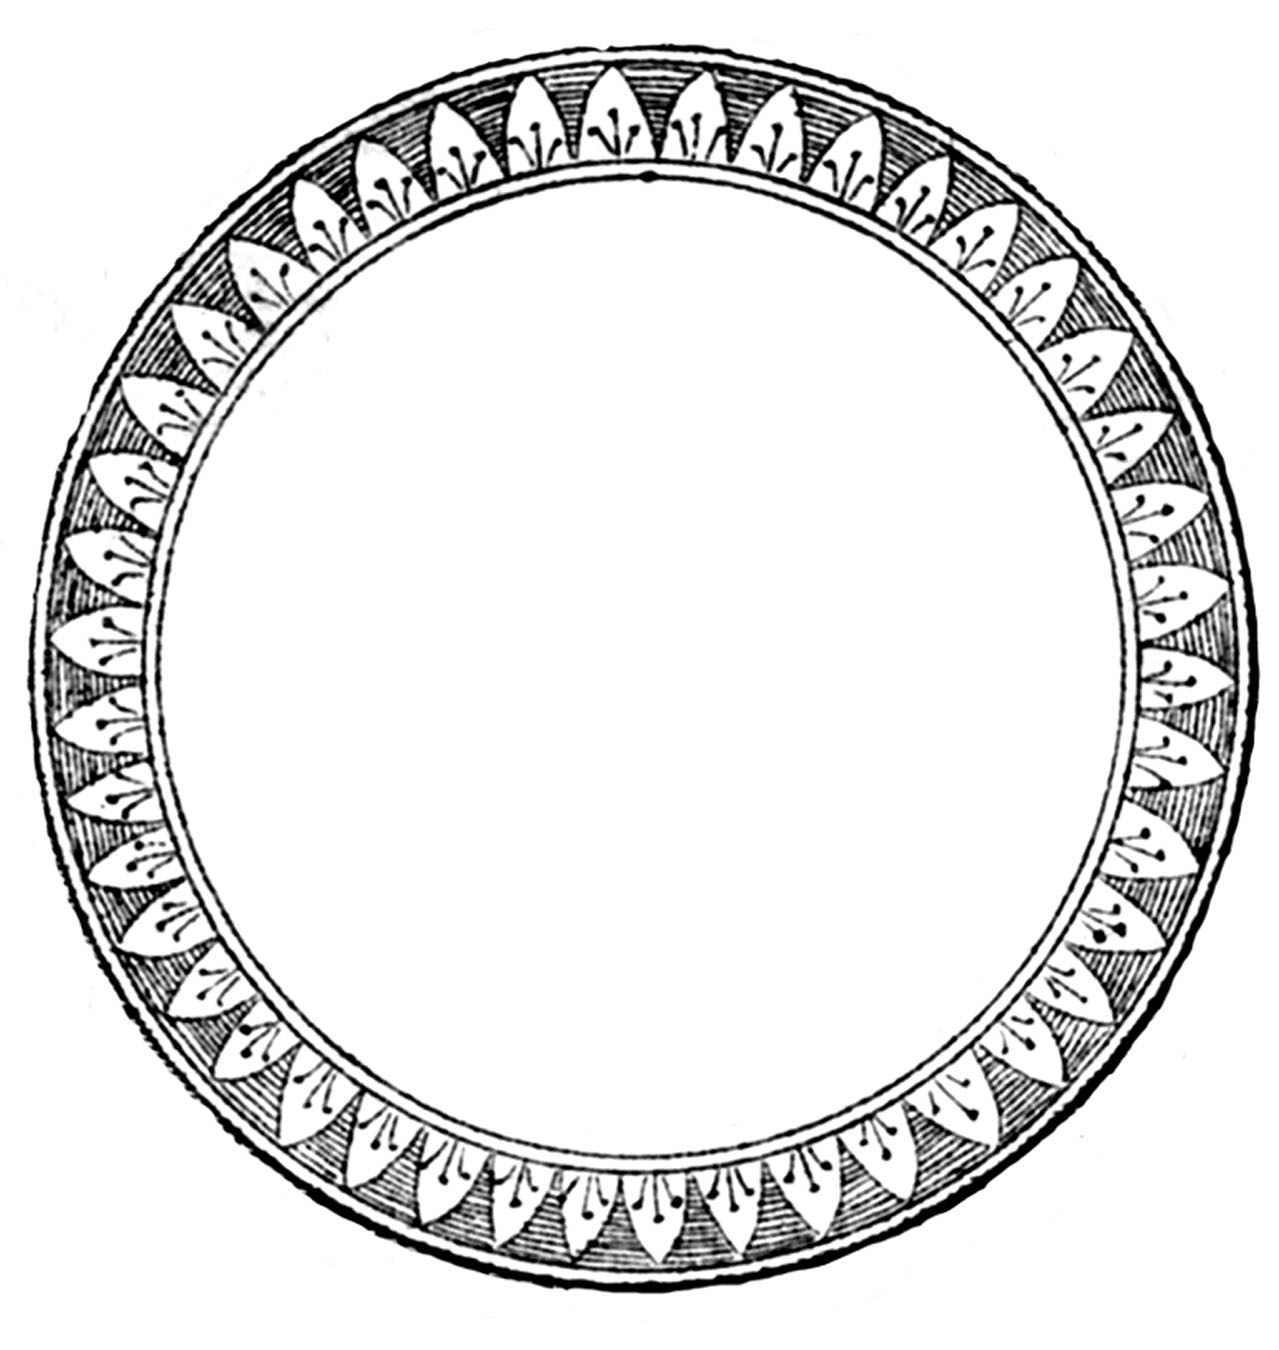 Round picture frame clipart banner download Free Circular Frame Cliparts, Download Free Clip Art, Free ... banner download